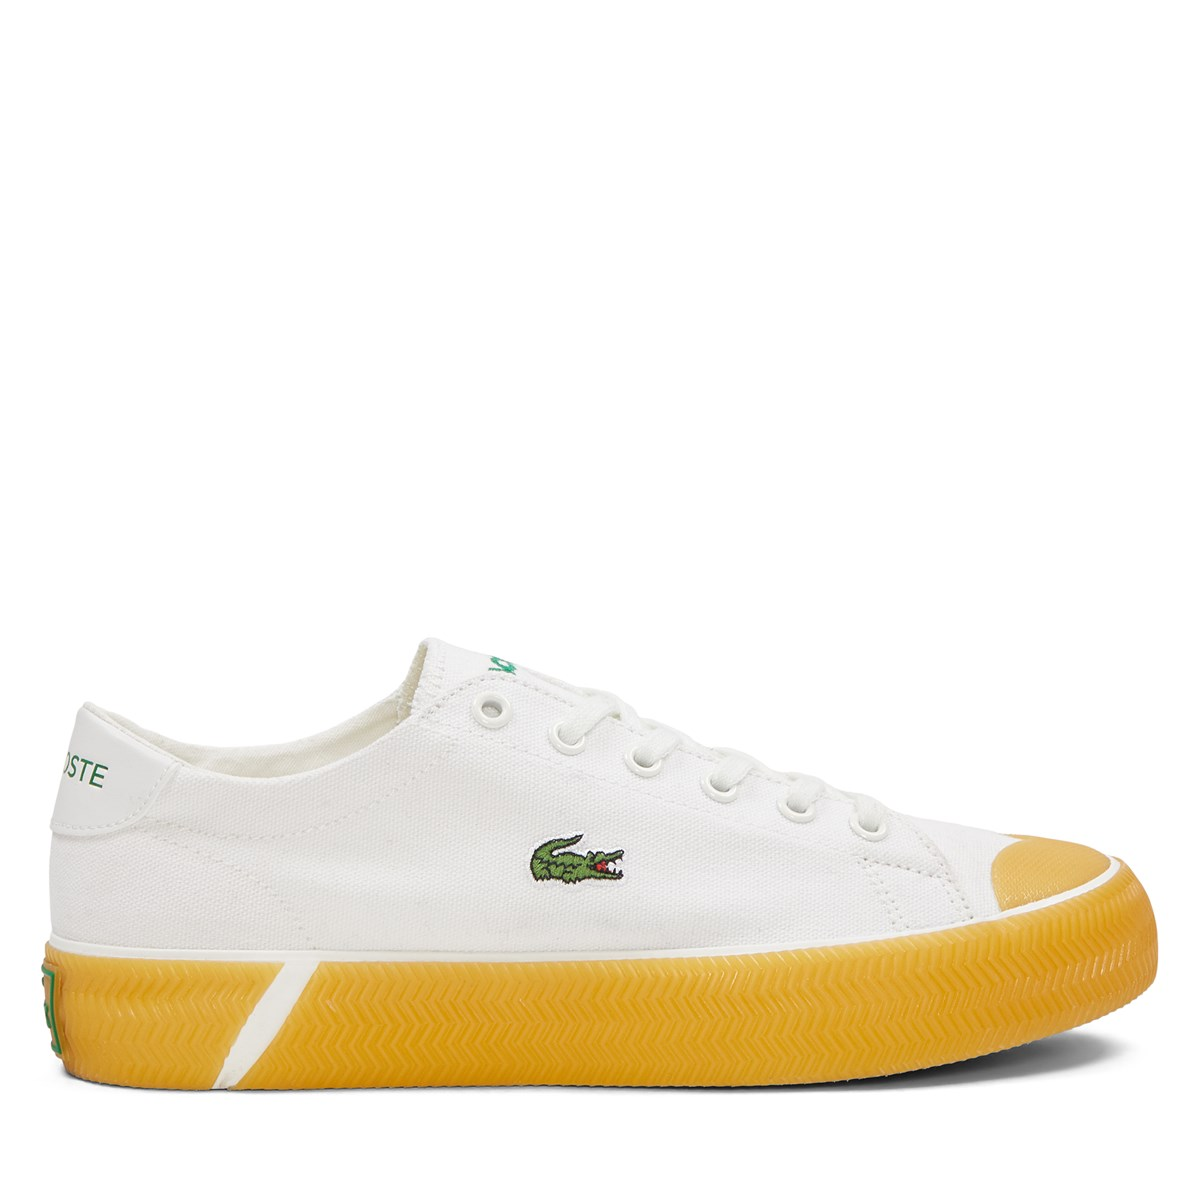 Women's Gripshot Sneakers in Chalk